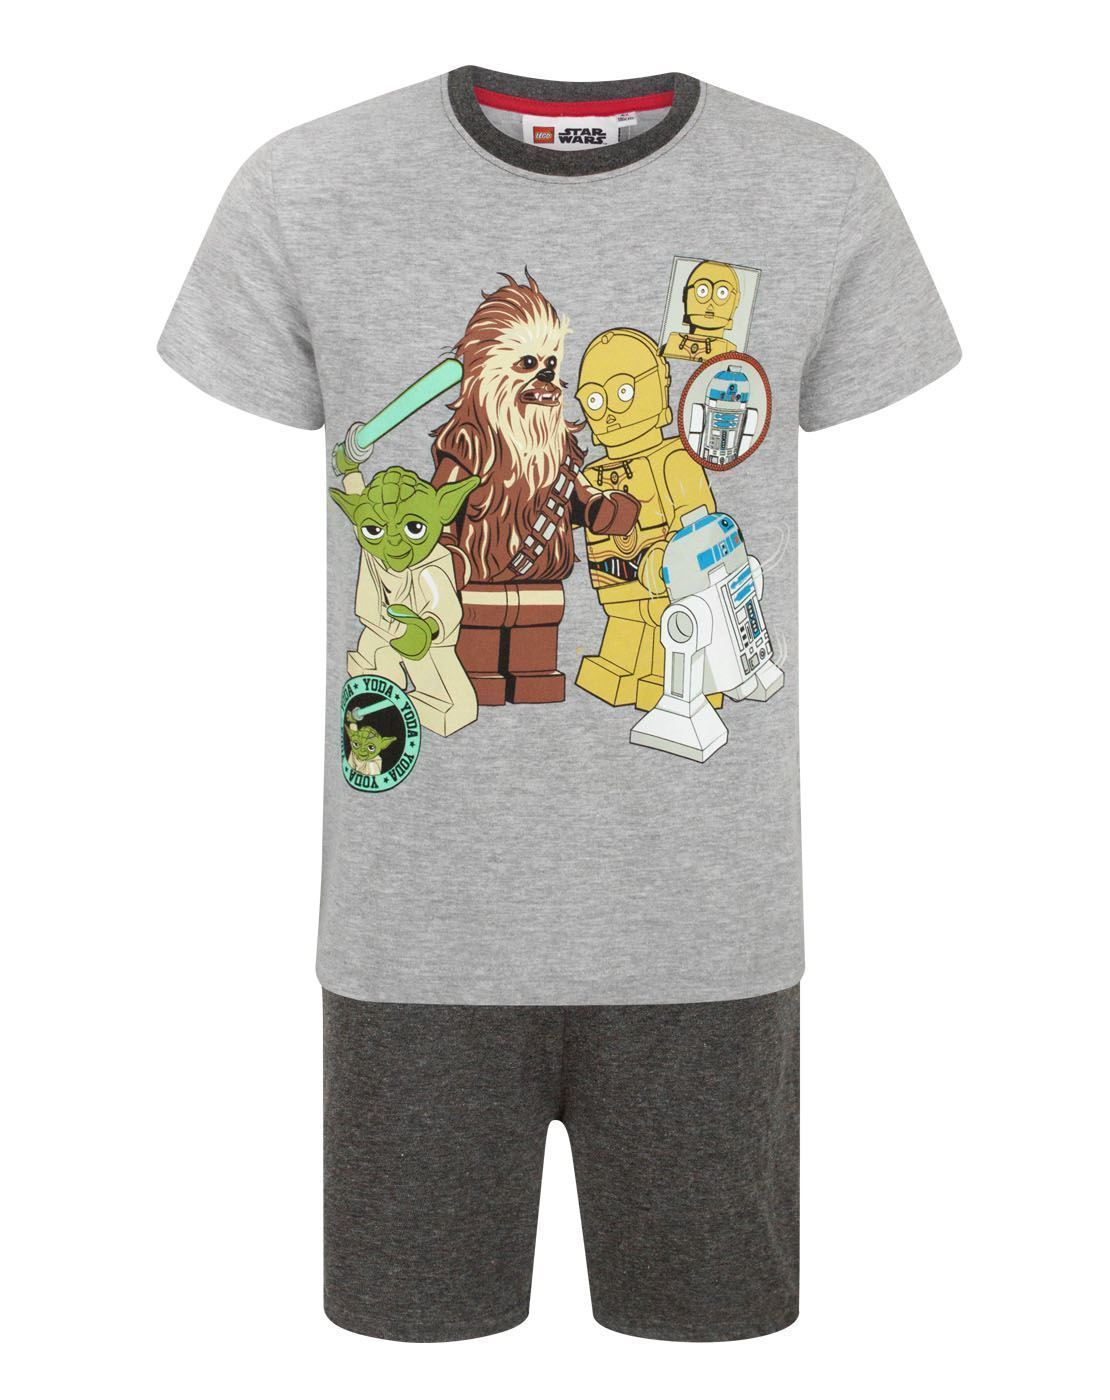 Lego Star Wars Boy's Pyjamas